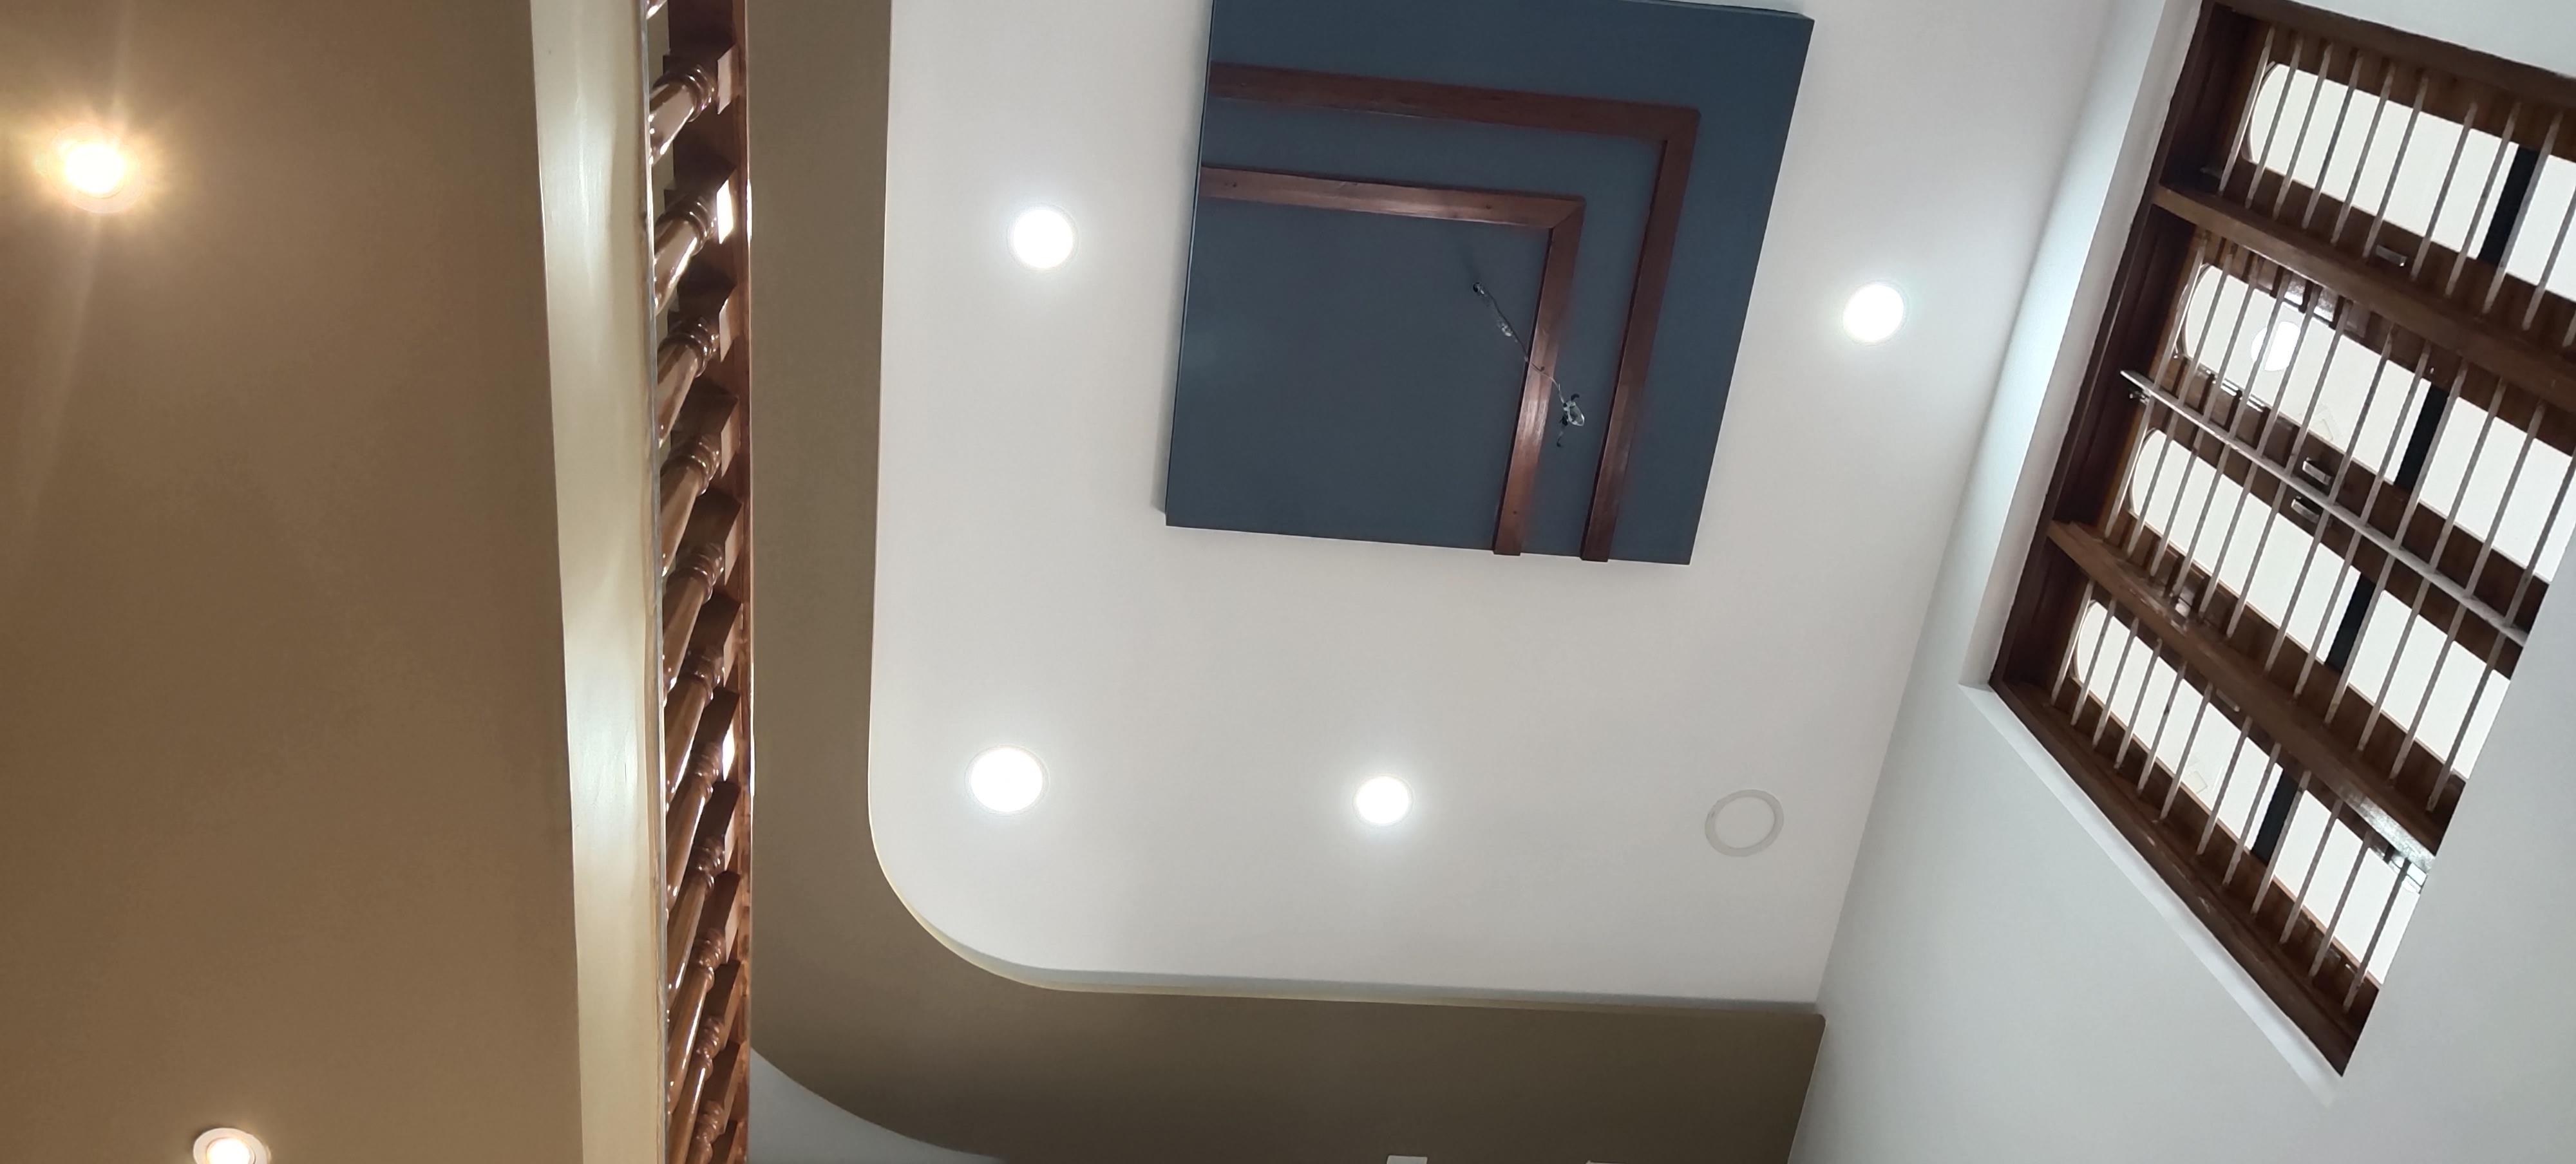 Dubbal hight  ceiling